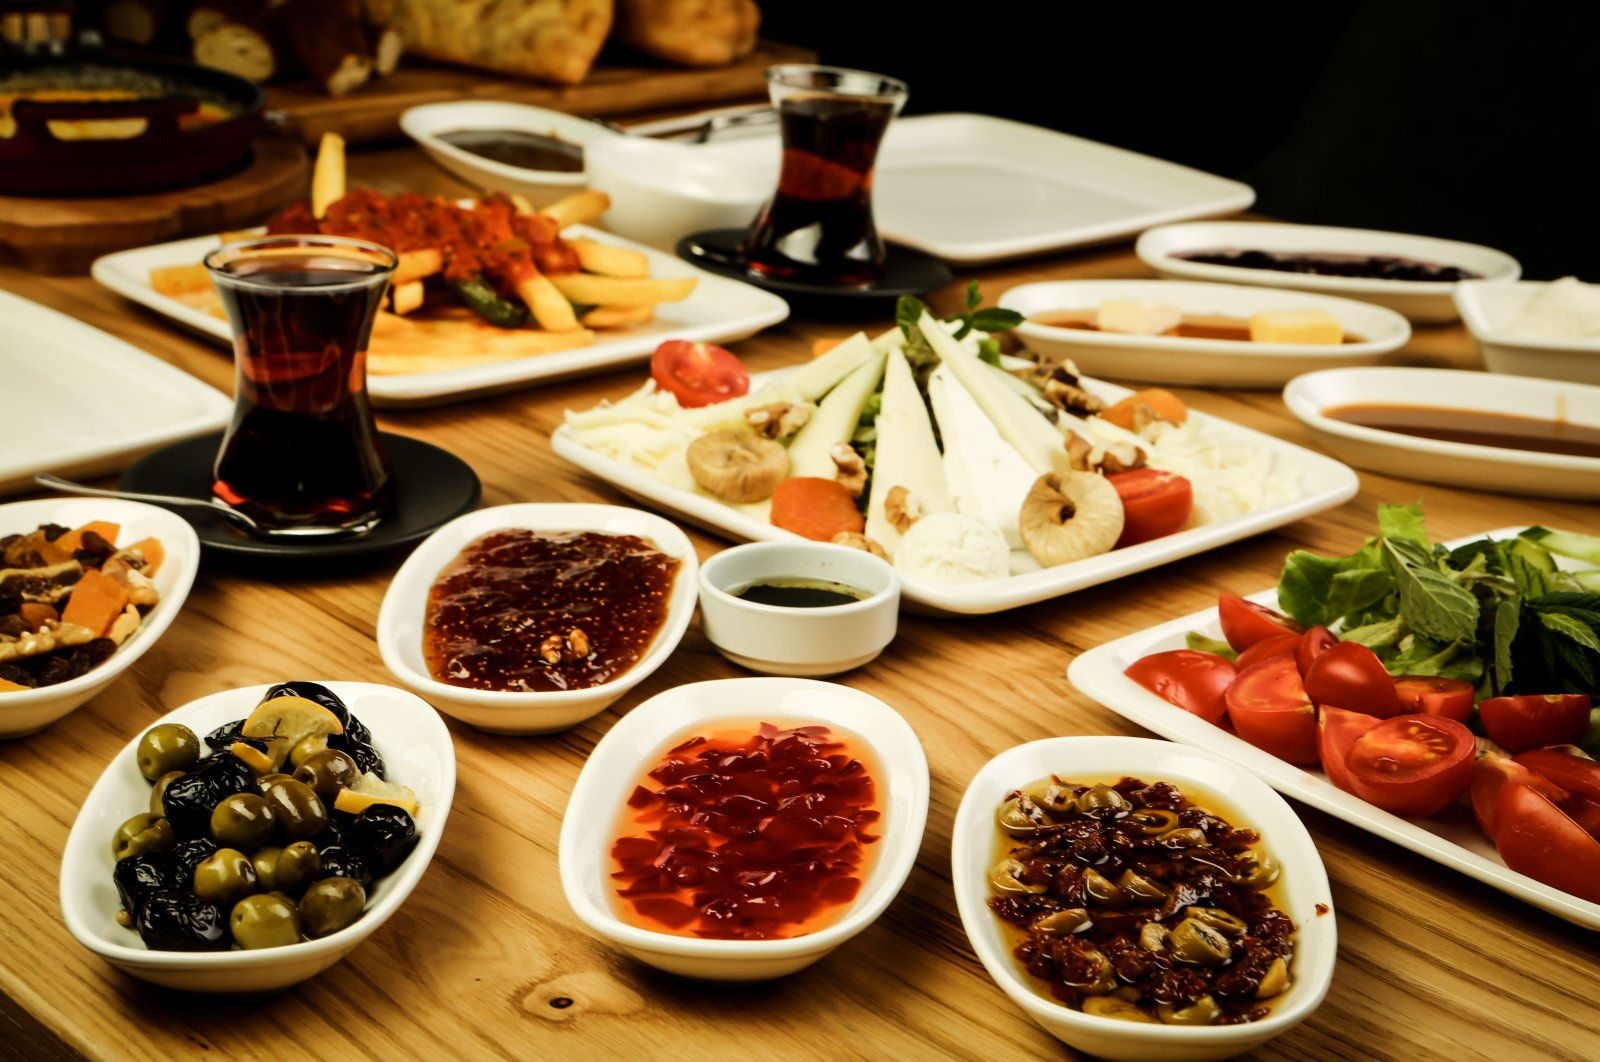 Just like a traditional Turkish breakfast, the breakfast from Van consists of a vast array of sweet and savory dishes. (Shutterstock Photo)